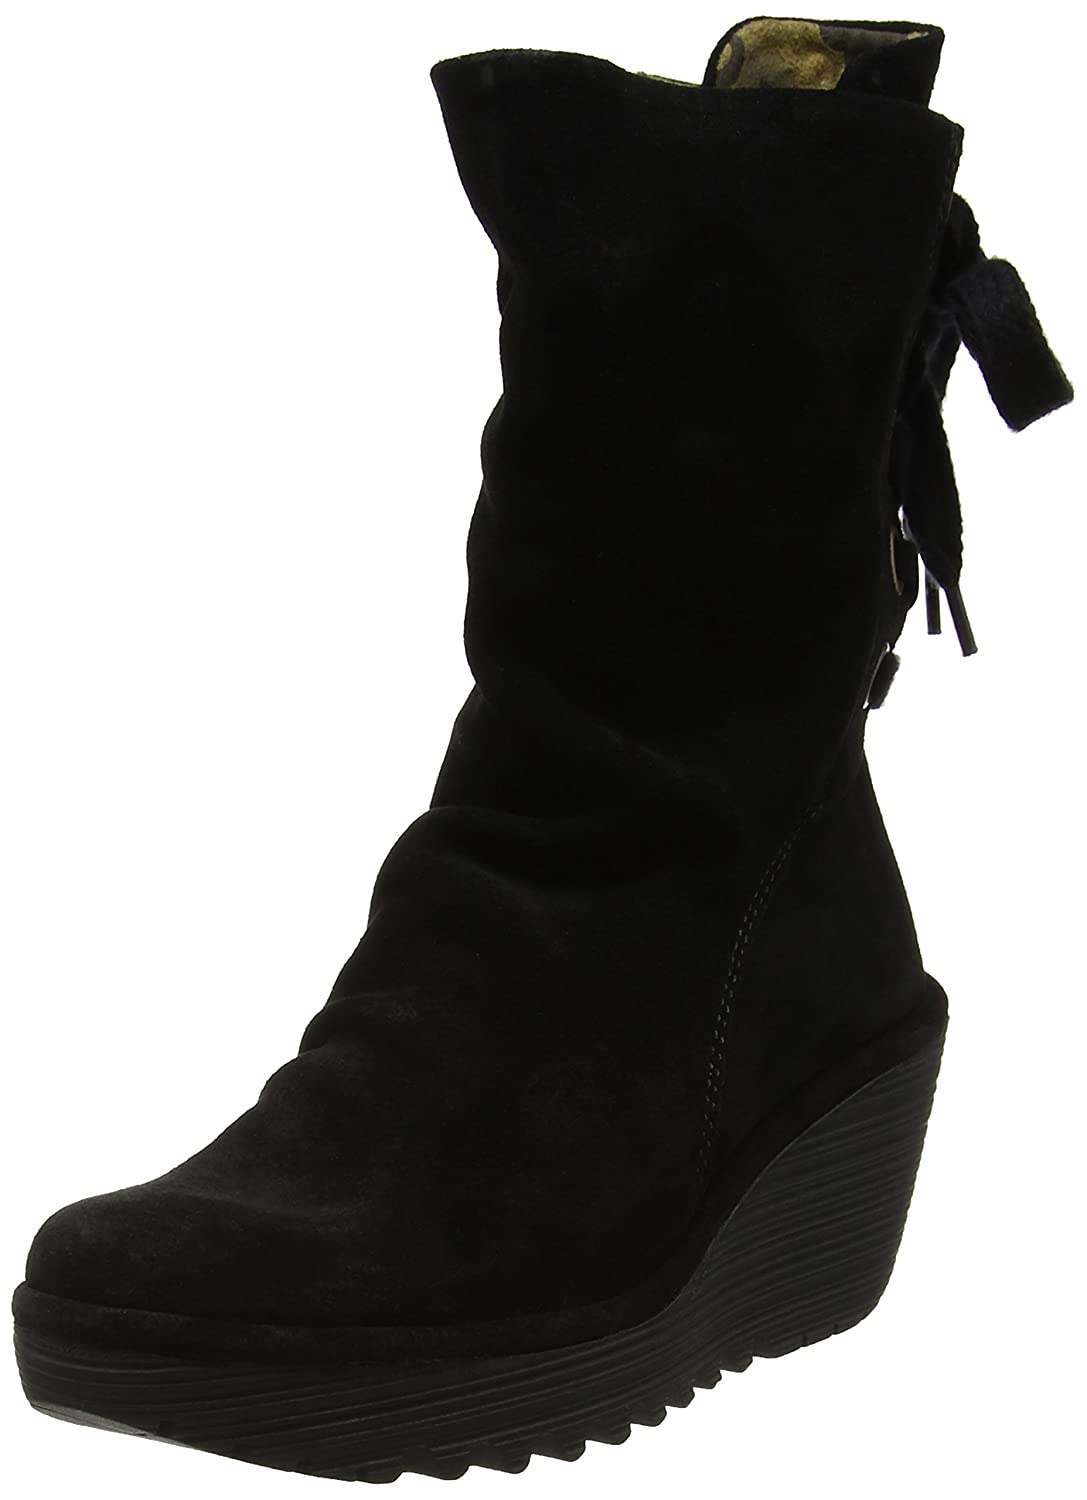 Fly London Yada, Botas para Mujer41 EU|Negro (Black)